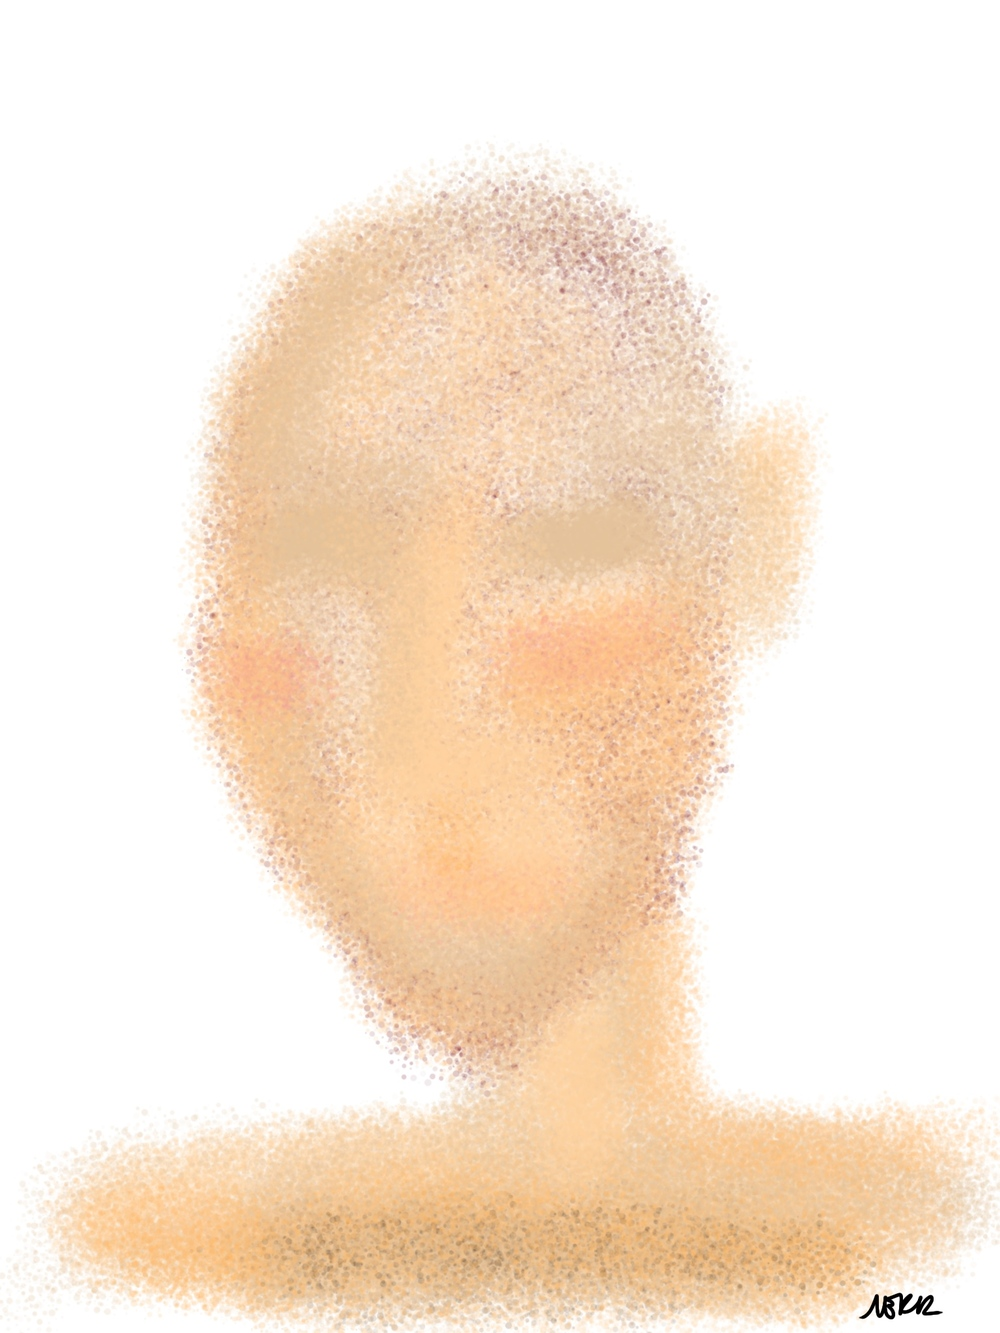 Made with Art Studio